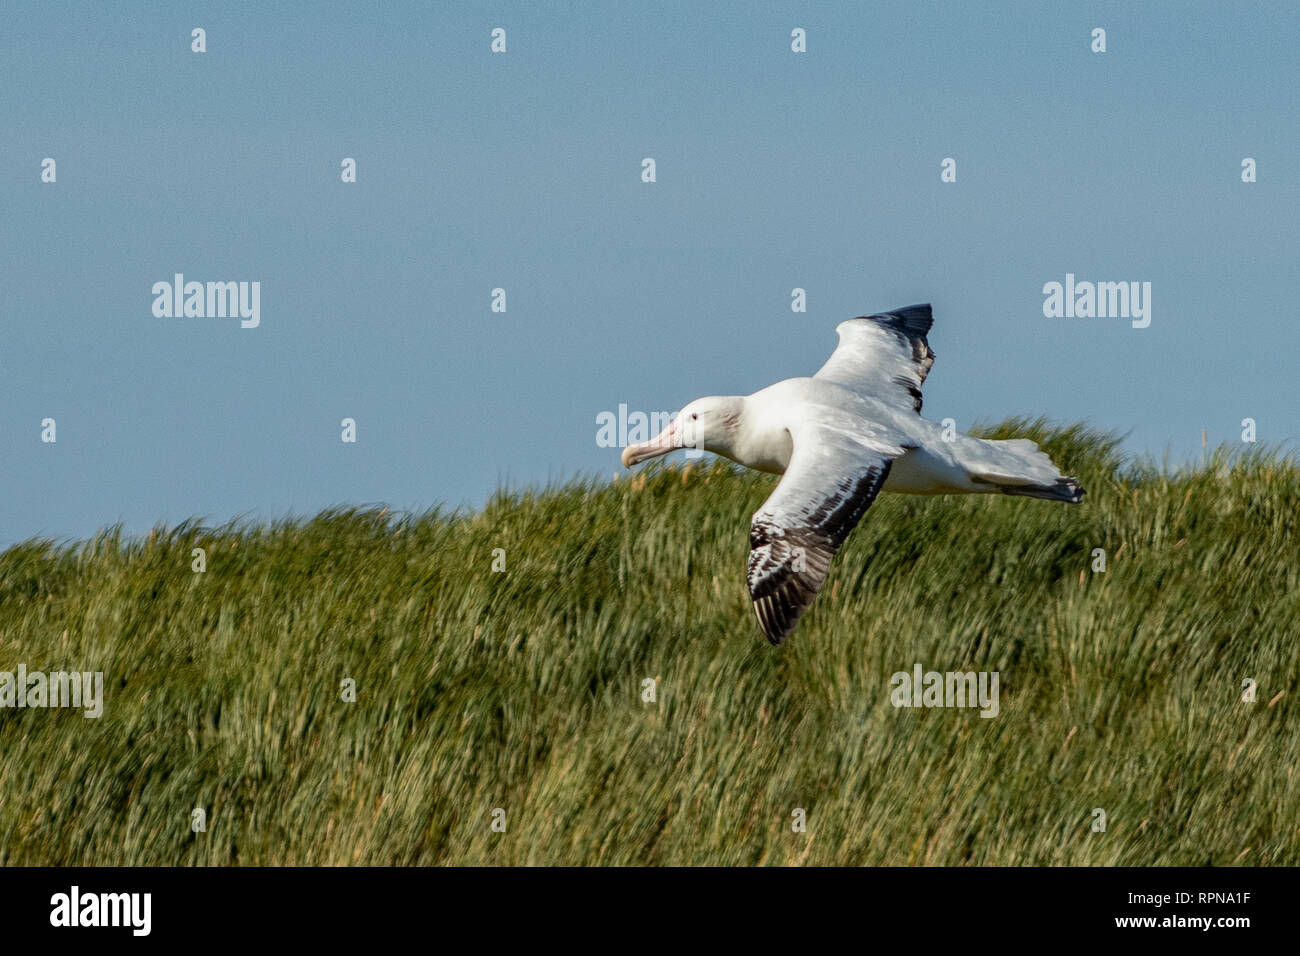 Wandering Albatross, Dimodea exulans at Prion Island, South Georgia - Stock Image